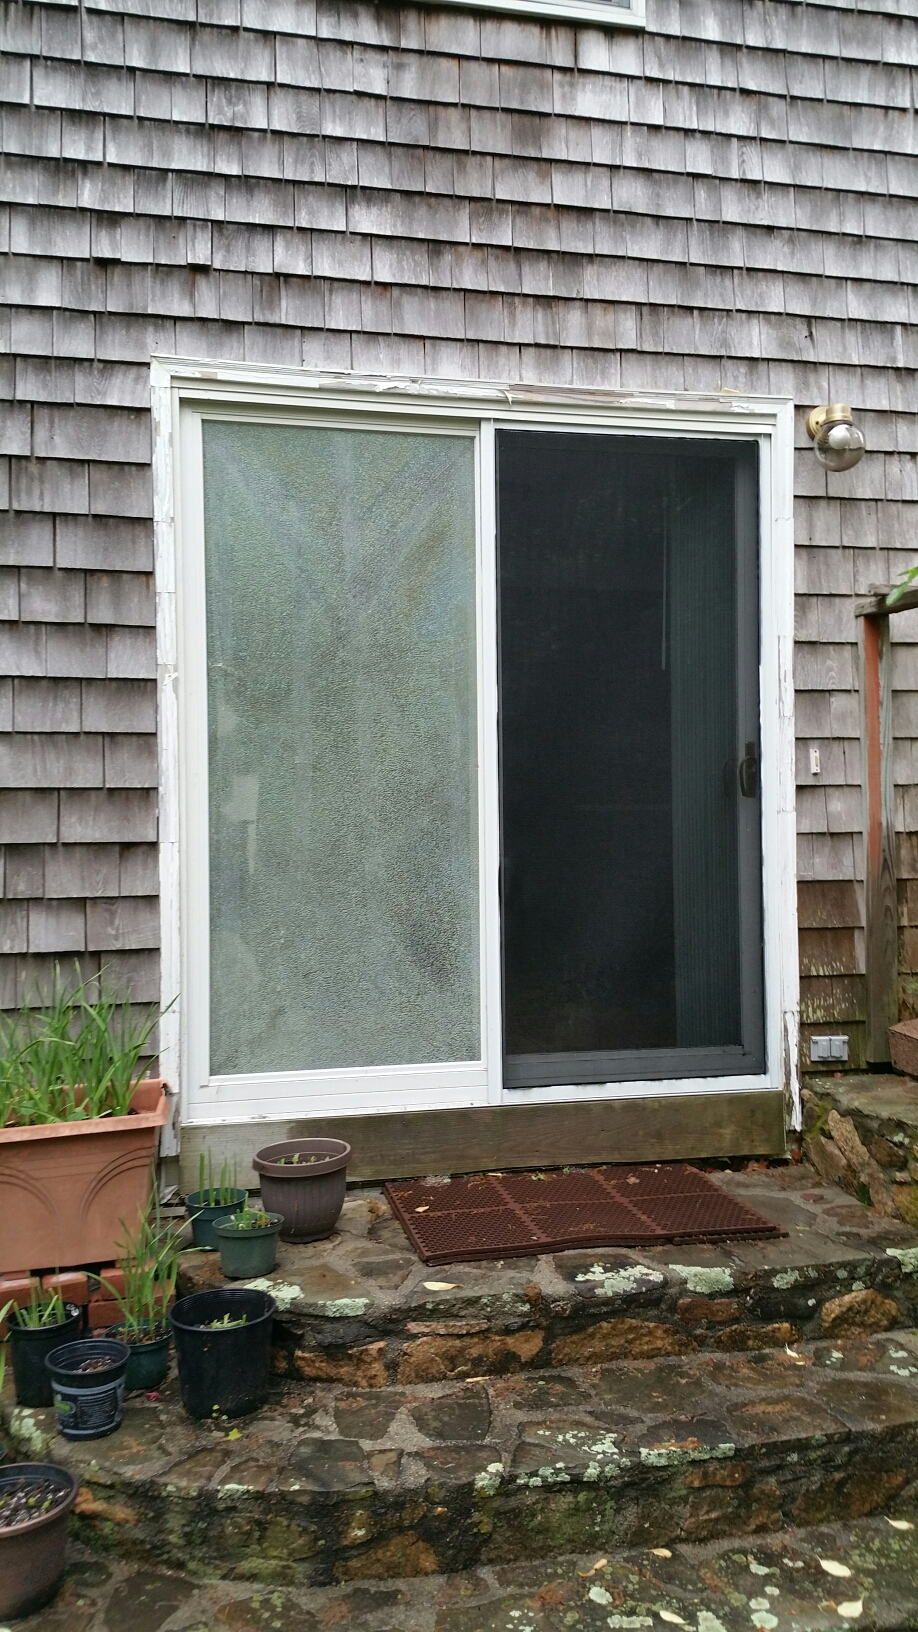 Providence, RI - Think it's time to replace this patio door? This couple did? Let Renewal by Andersen update and beautify your patio door entrance with gorgeous options and hardware to choose from + Andersen's exclusive start to finish installation process. Do it once, do it right.